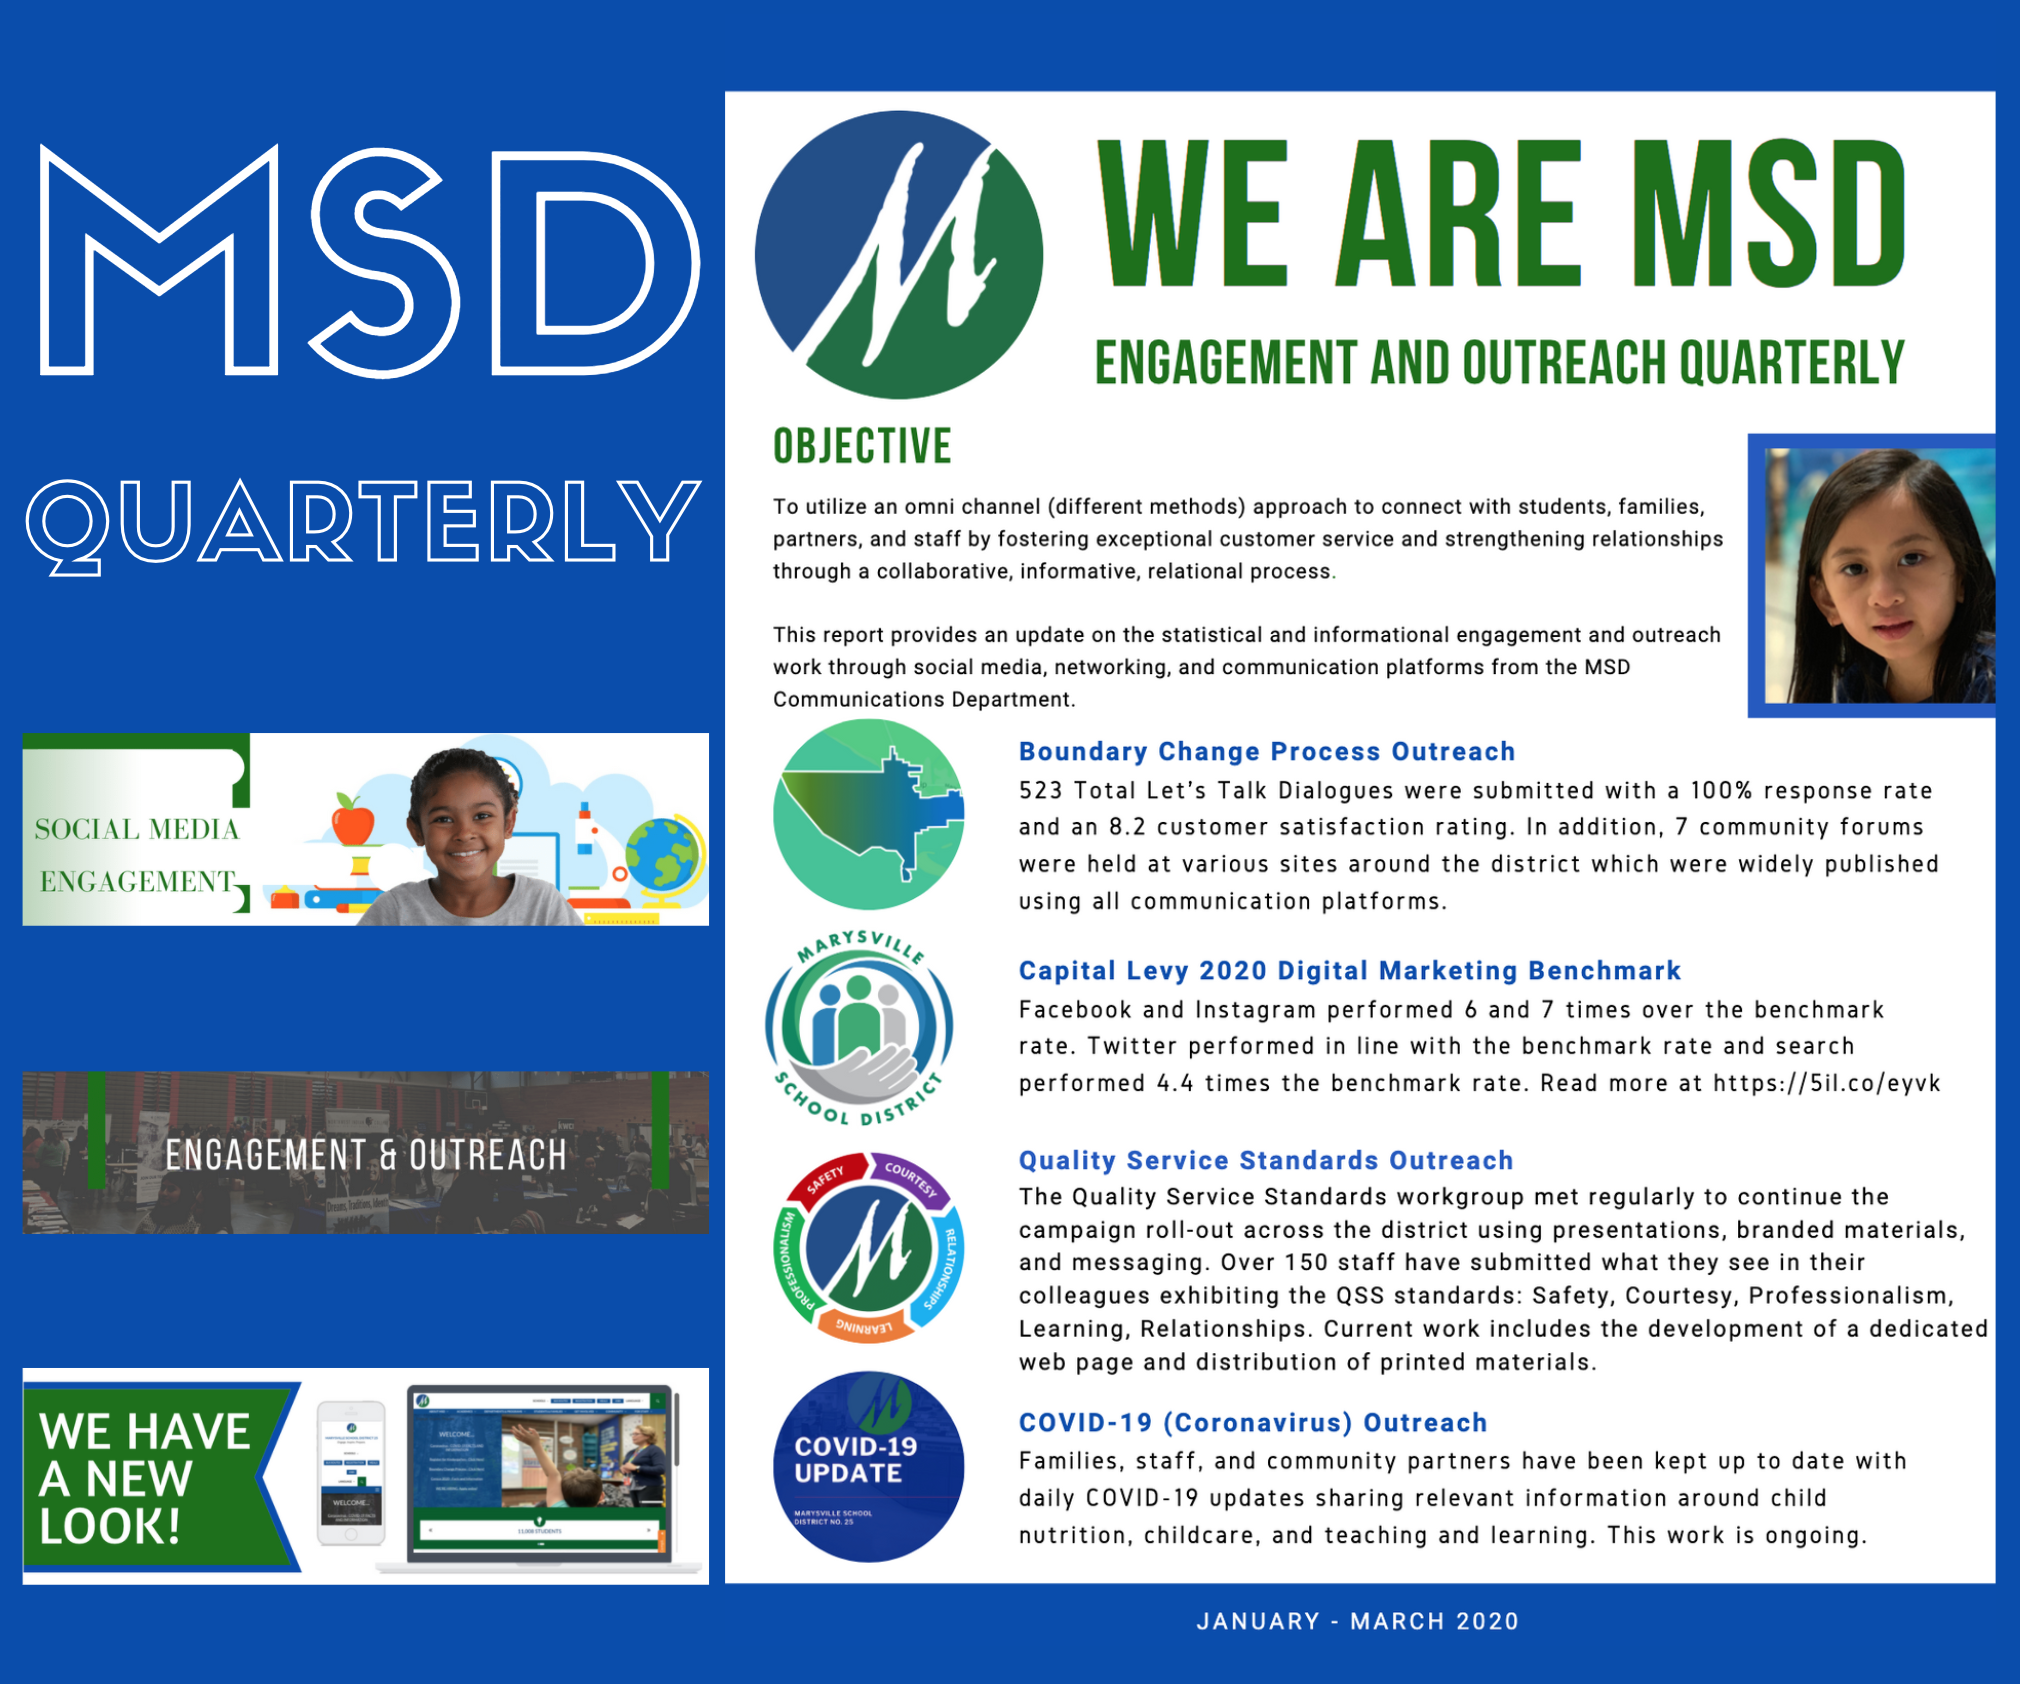 MSD Quarterly